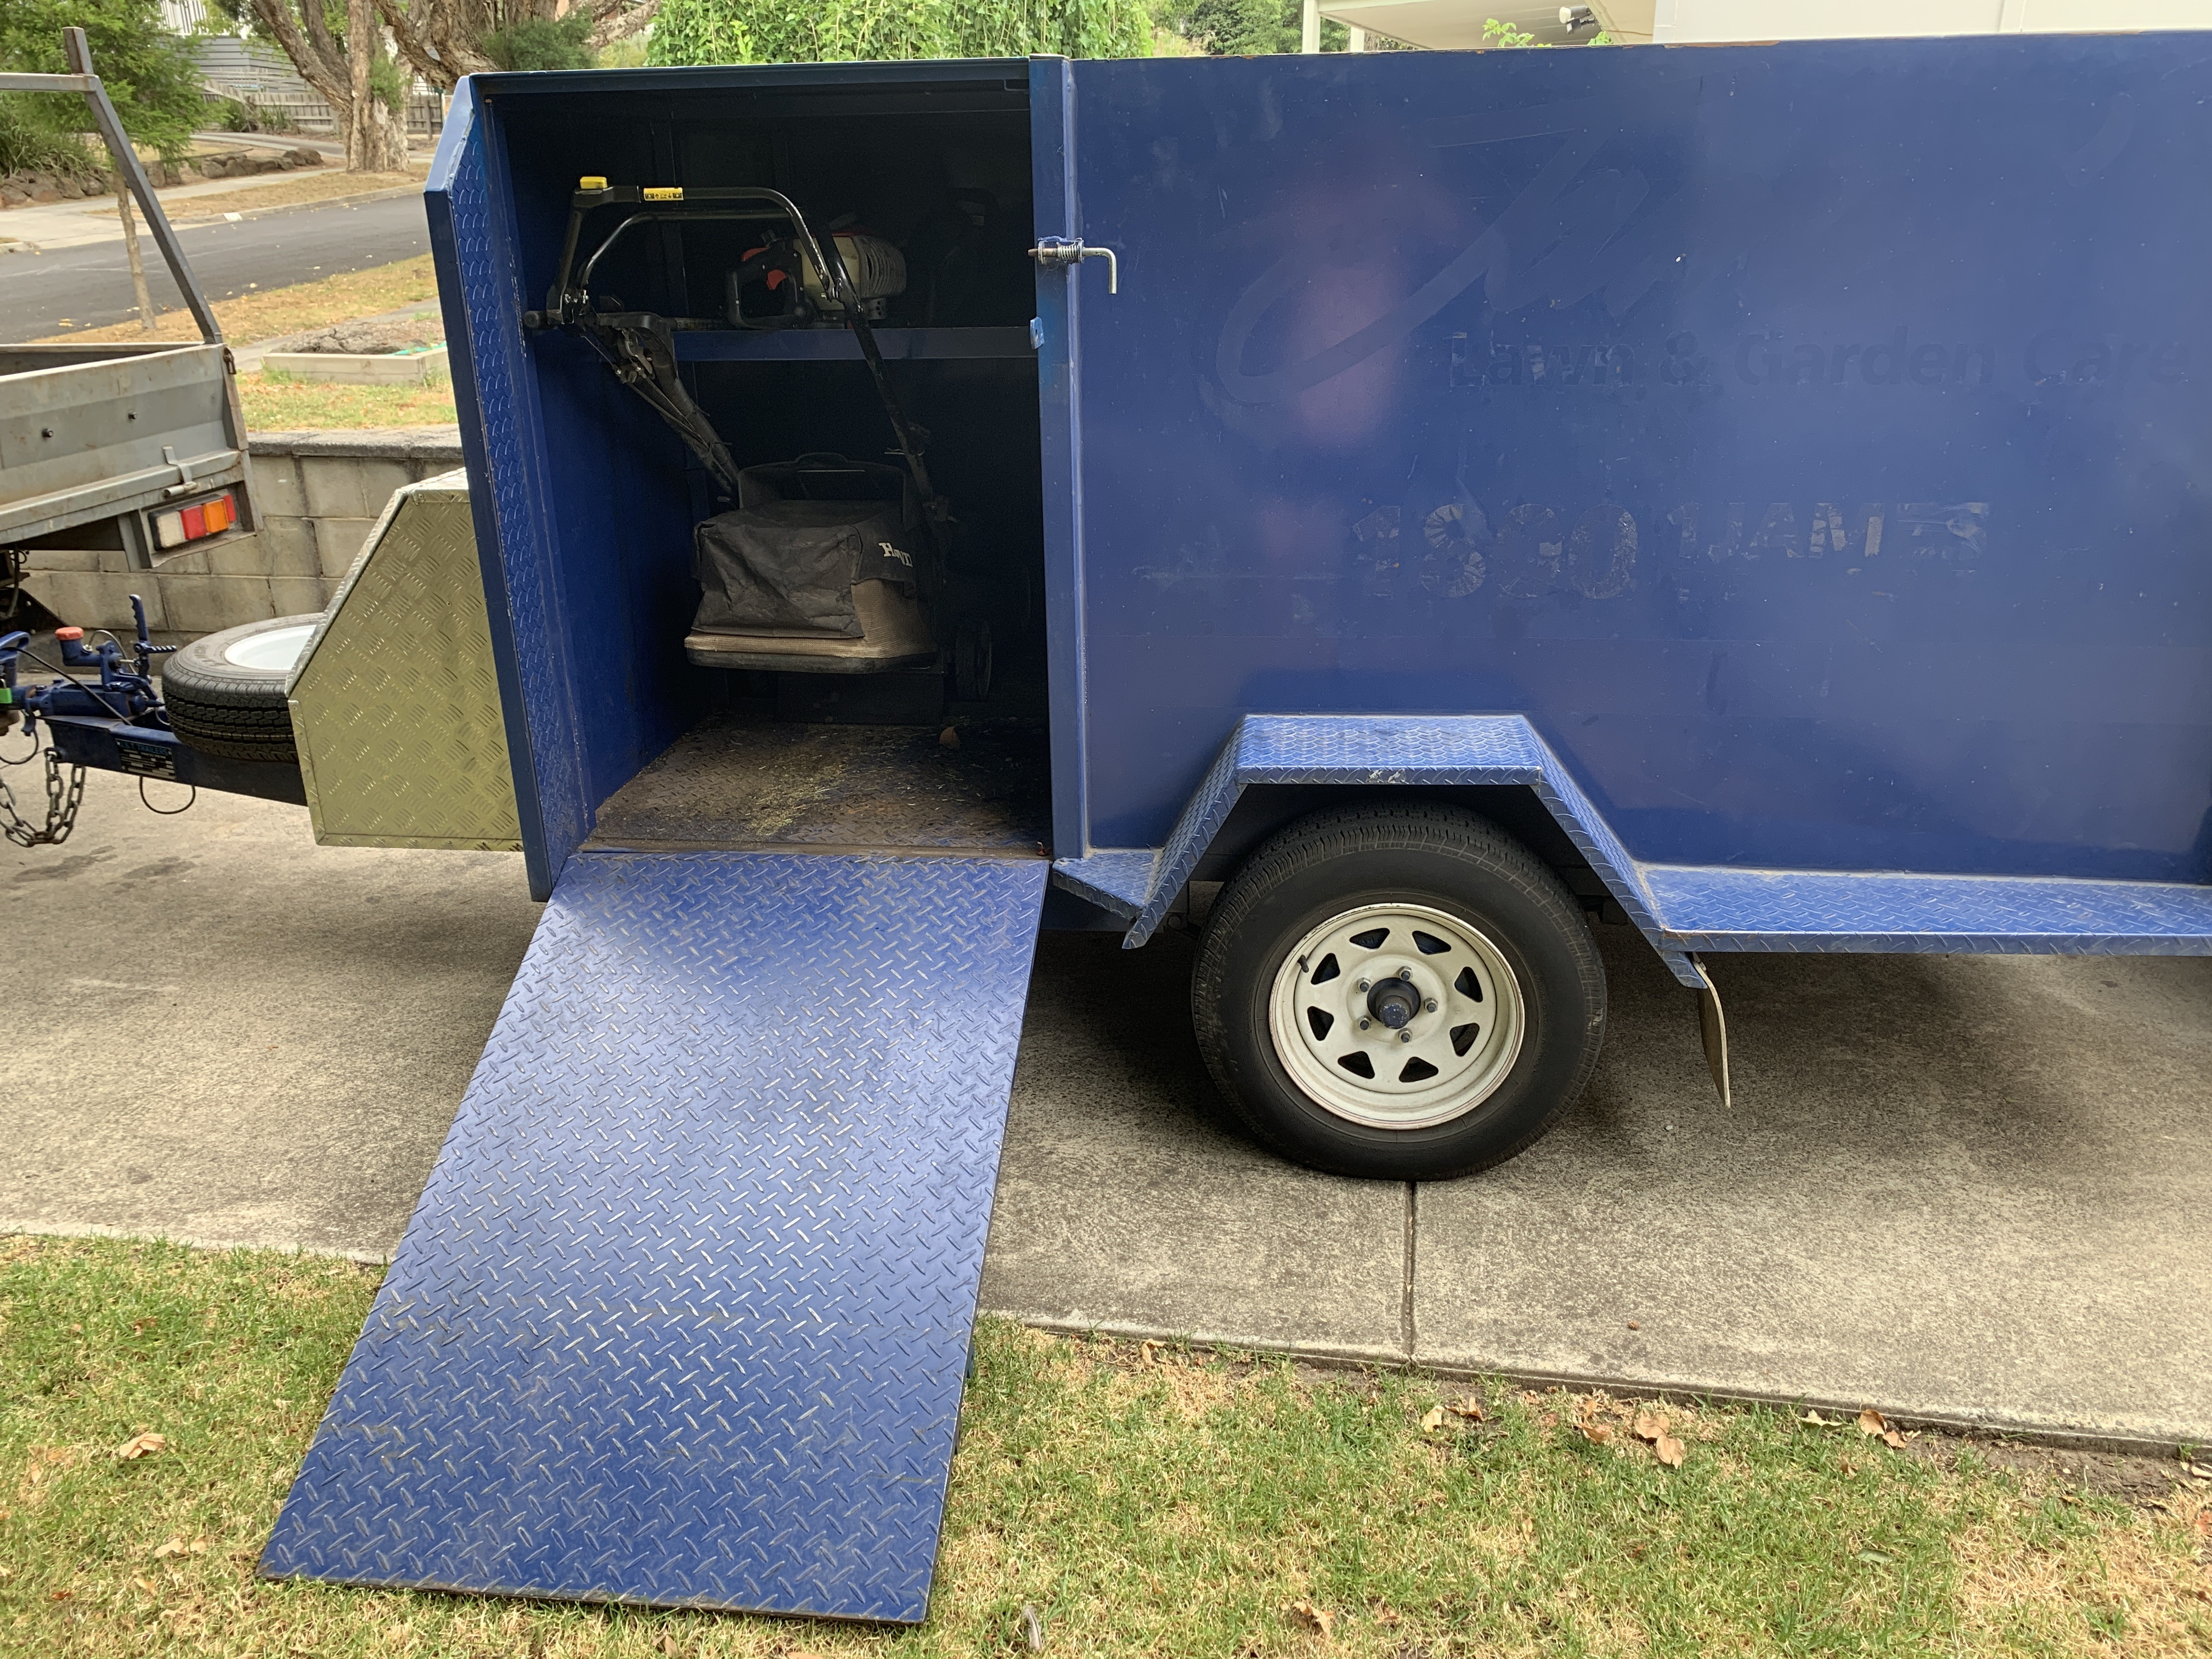 lawn-garden-business-earning-approx-1-600-pw-eastern-suburbs-melbourne-5